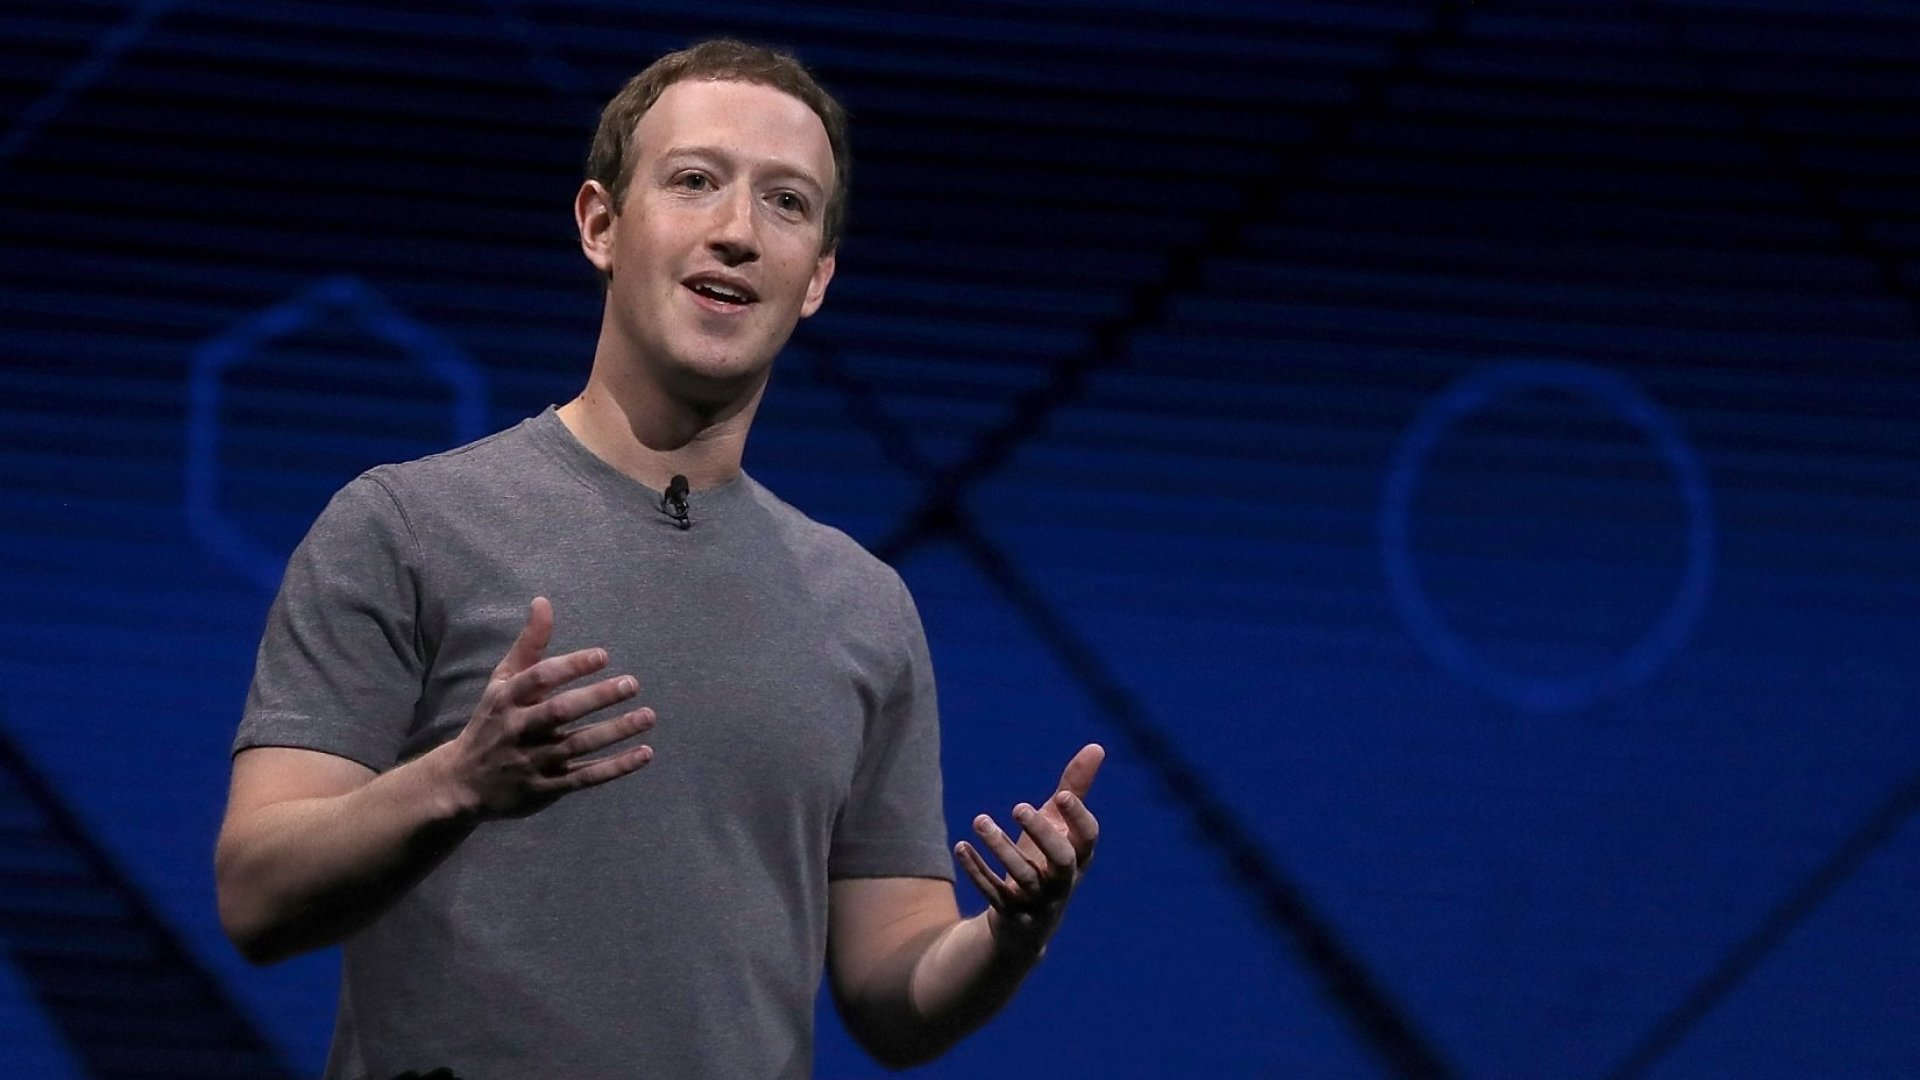 Facebook, Attempting to Woo Back Users, Has Turned Into an Unbearable Nag